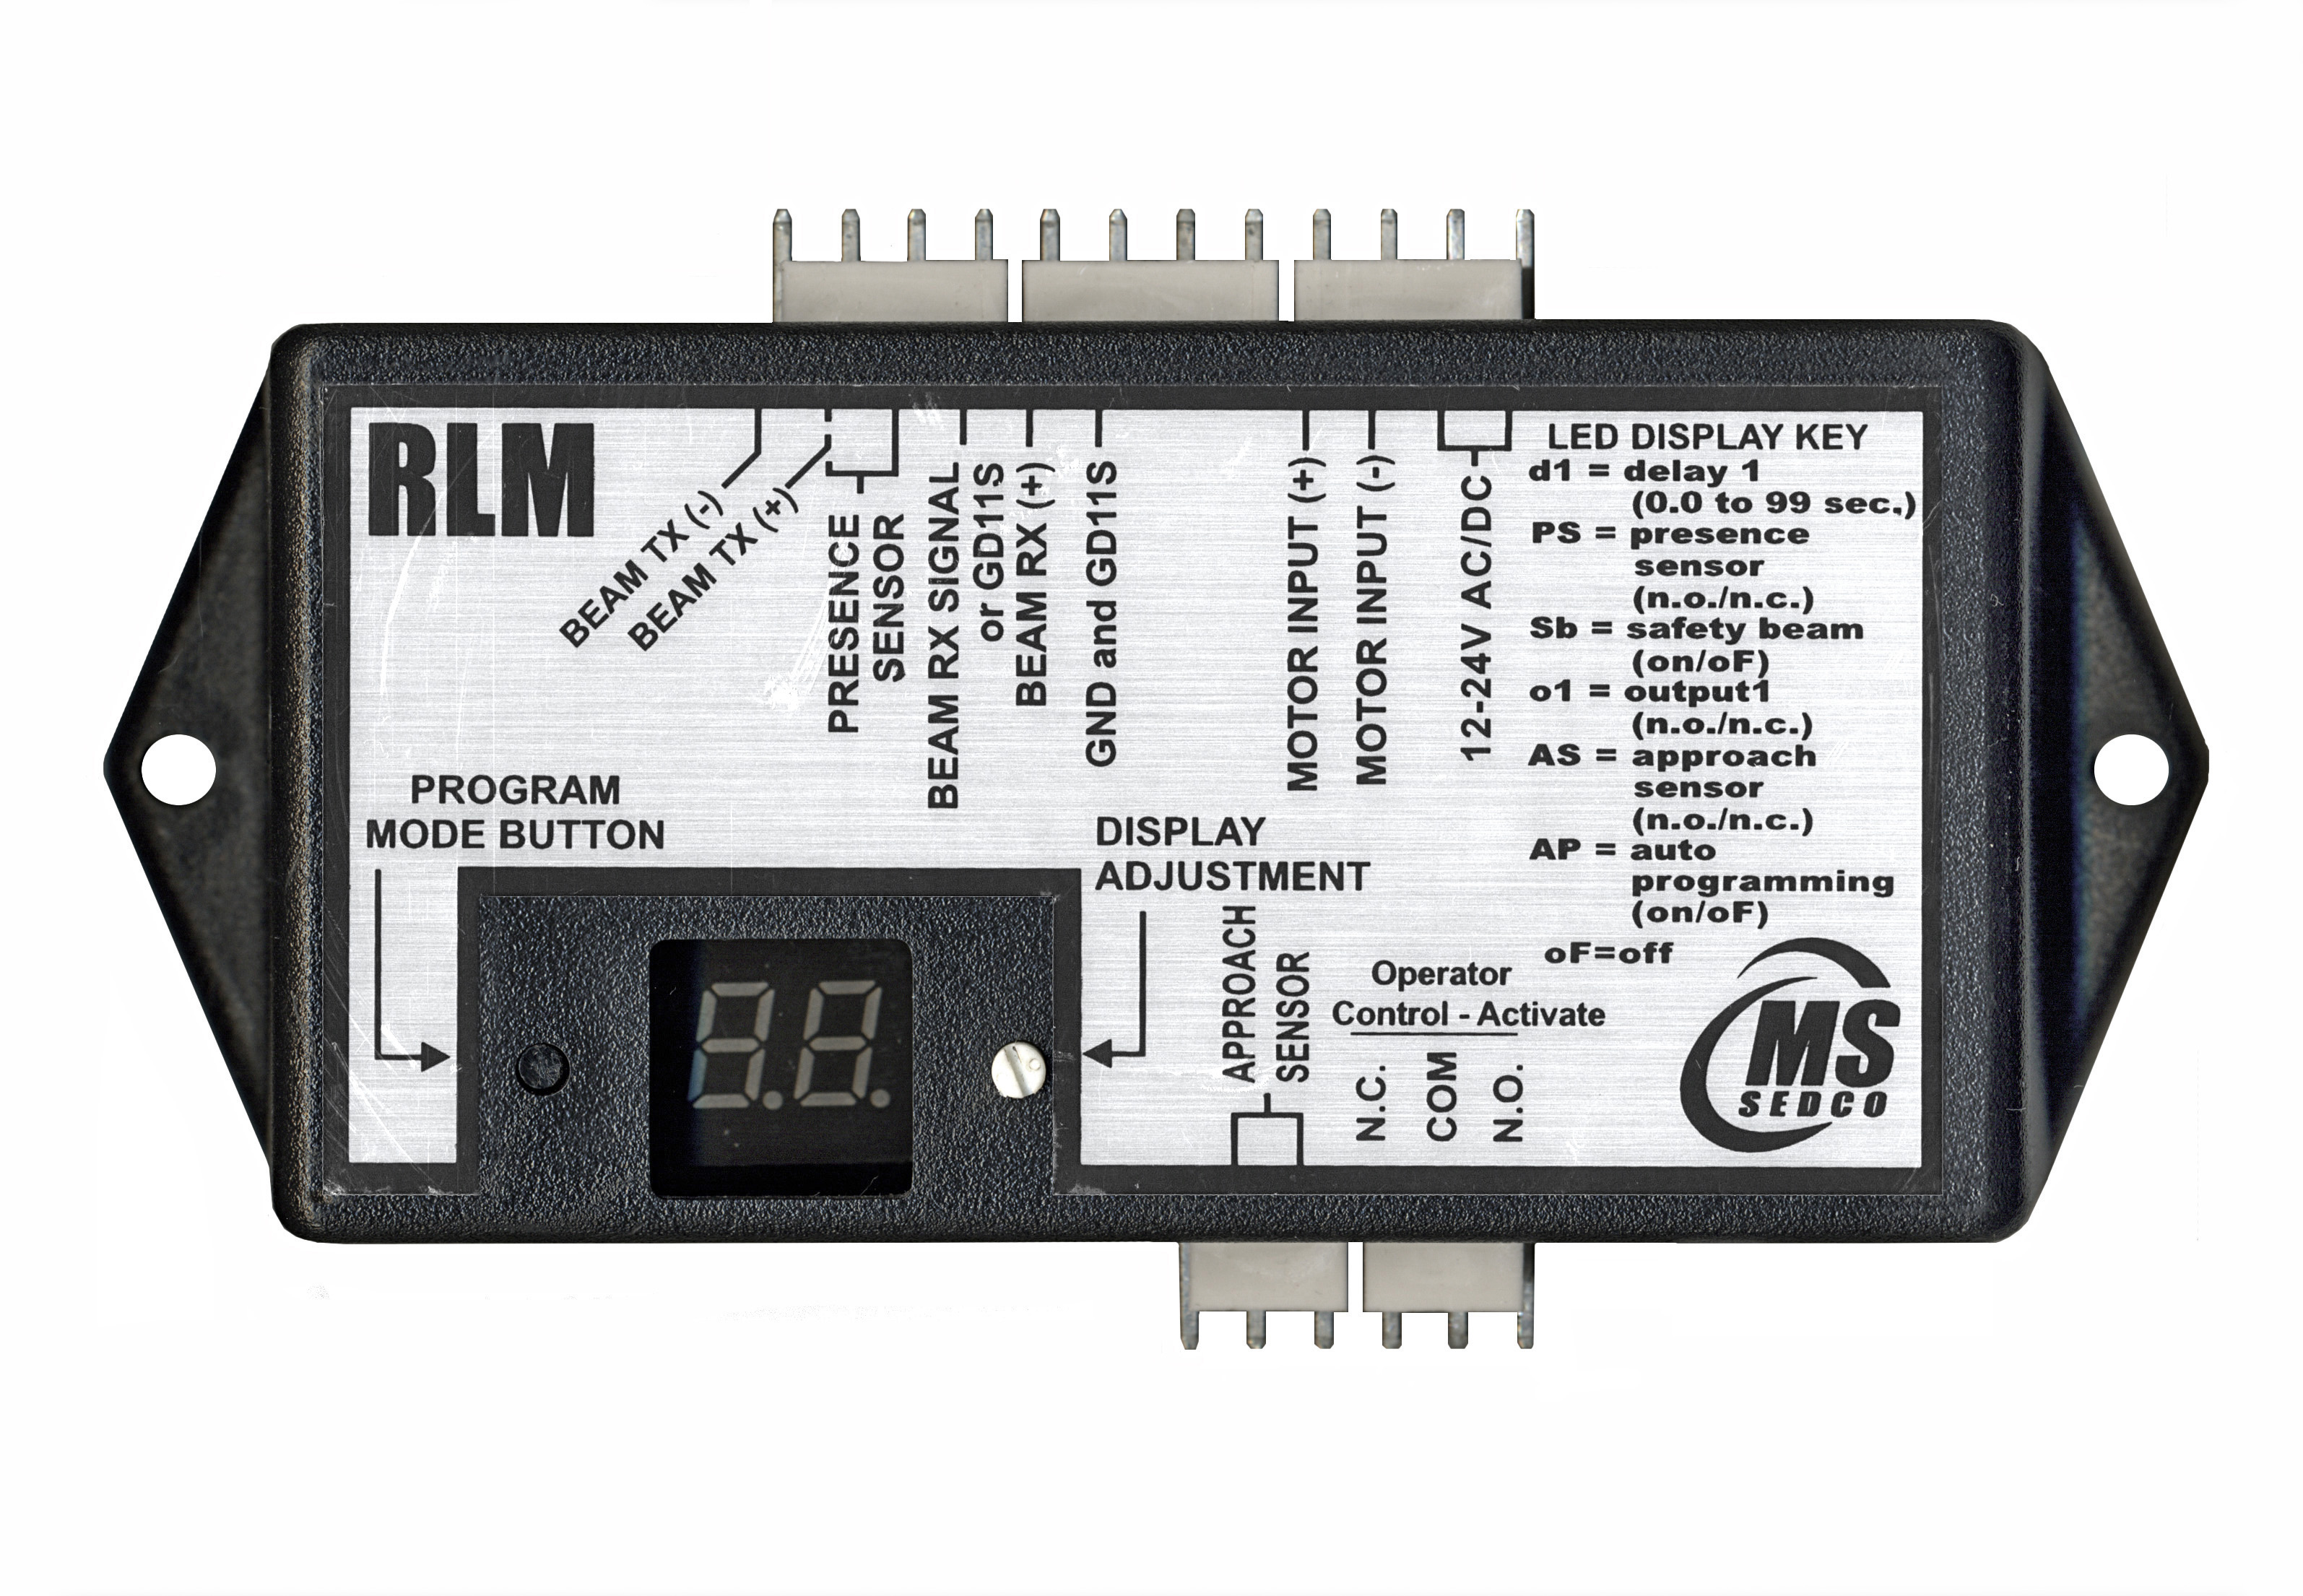 RLM Relay Lockout Module with Optional Safety Beams